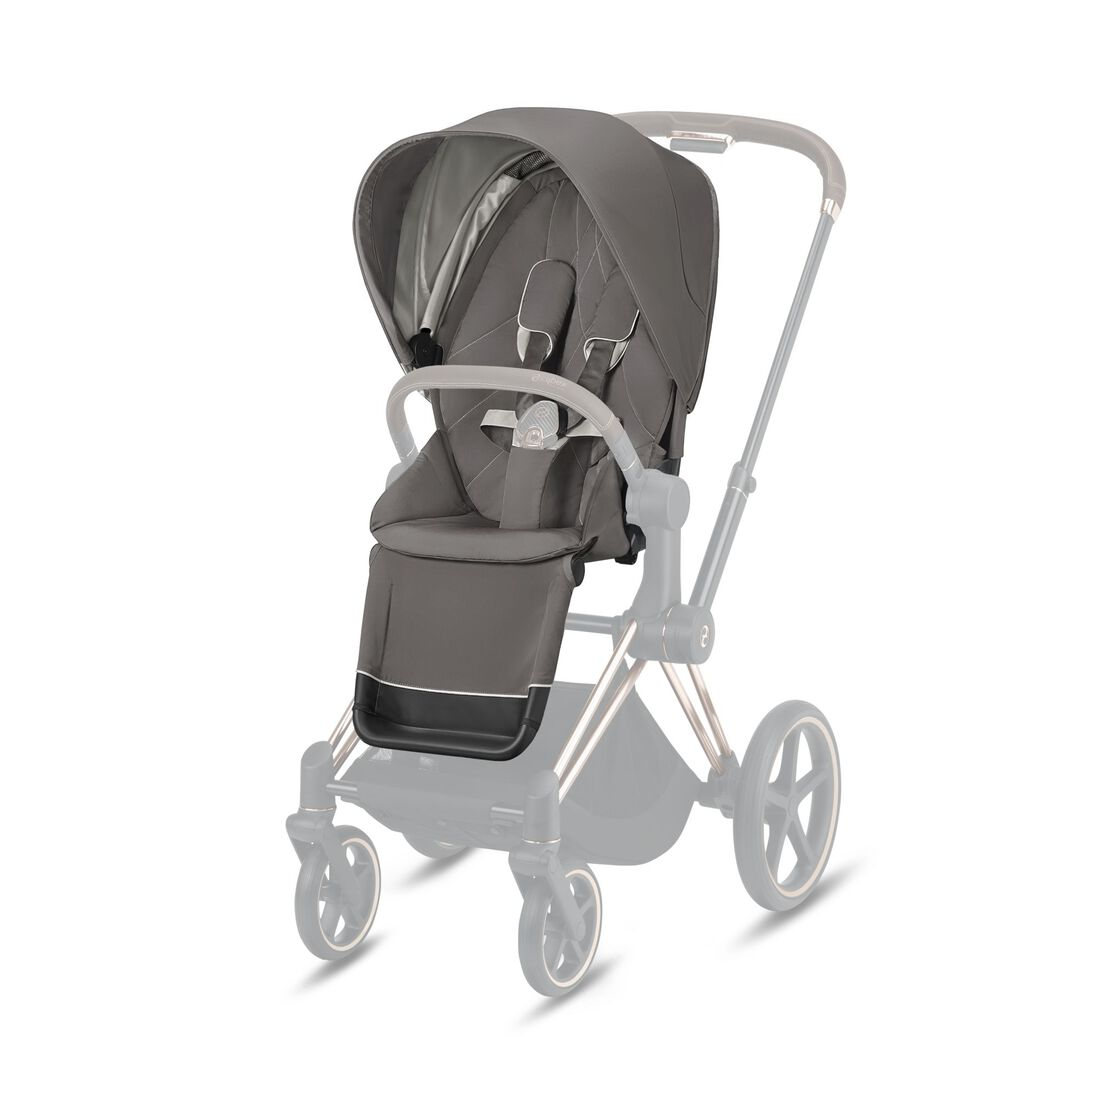 CYBEX Priam Seat Pack - Soho Grey in Soho Grey large image number 1